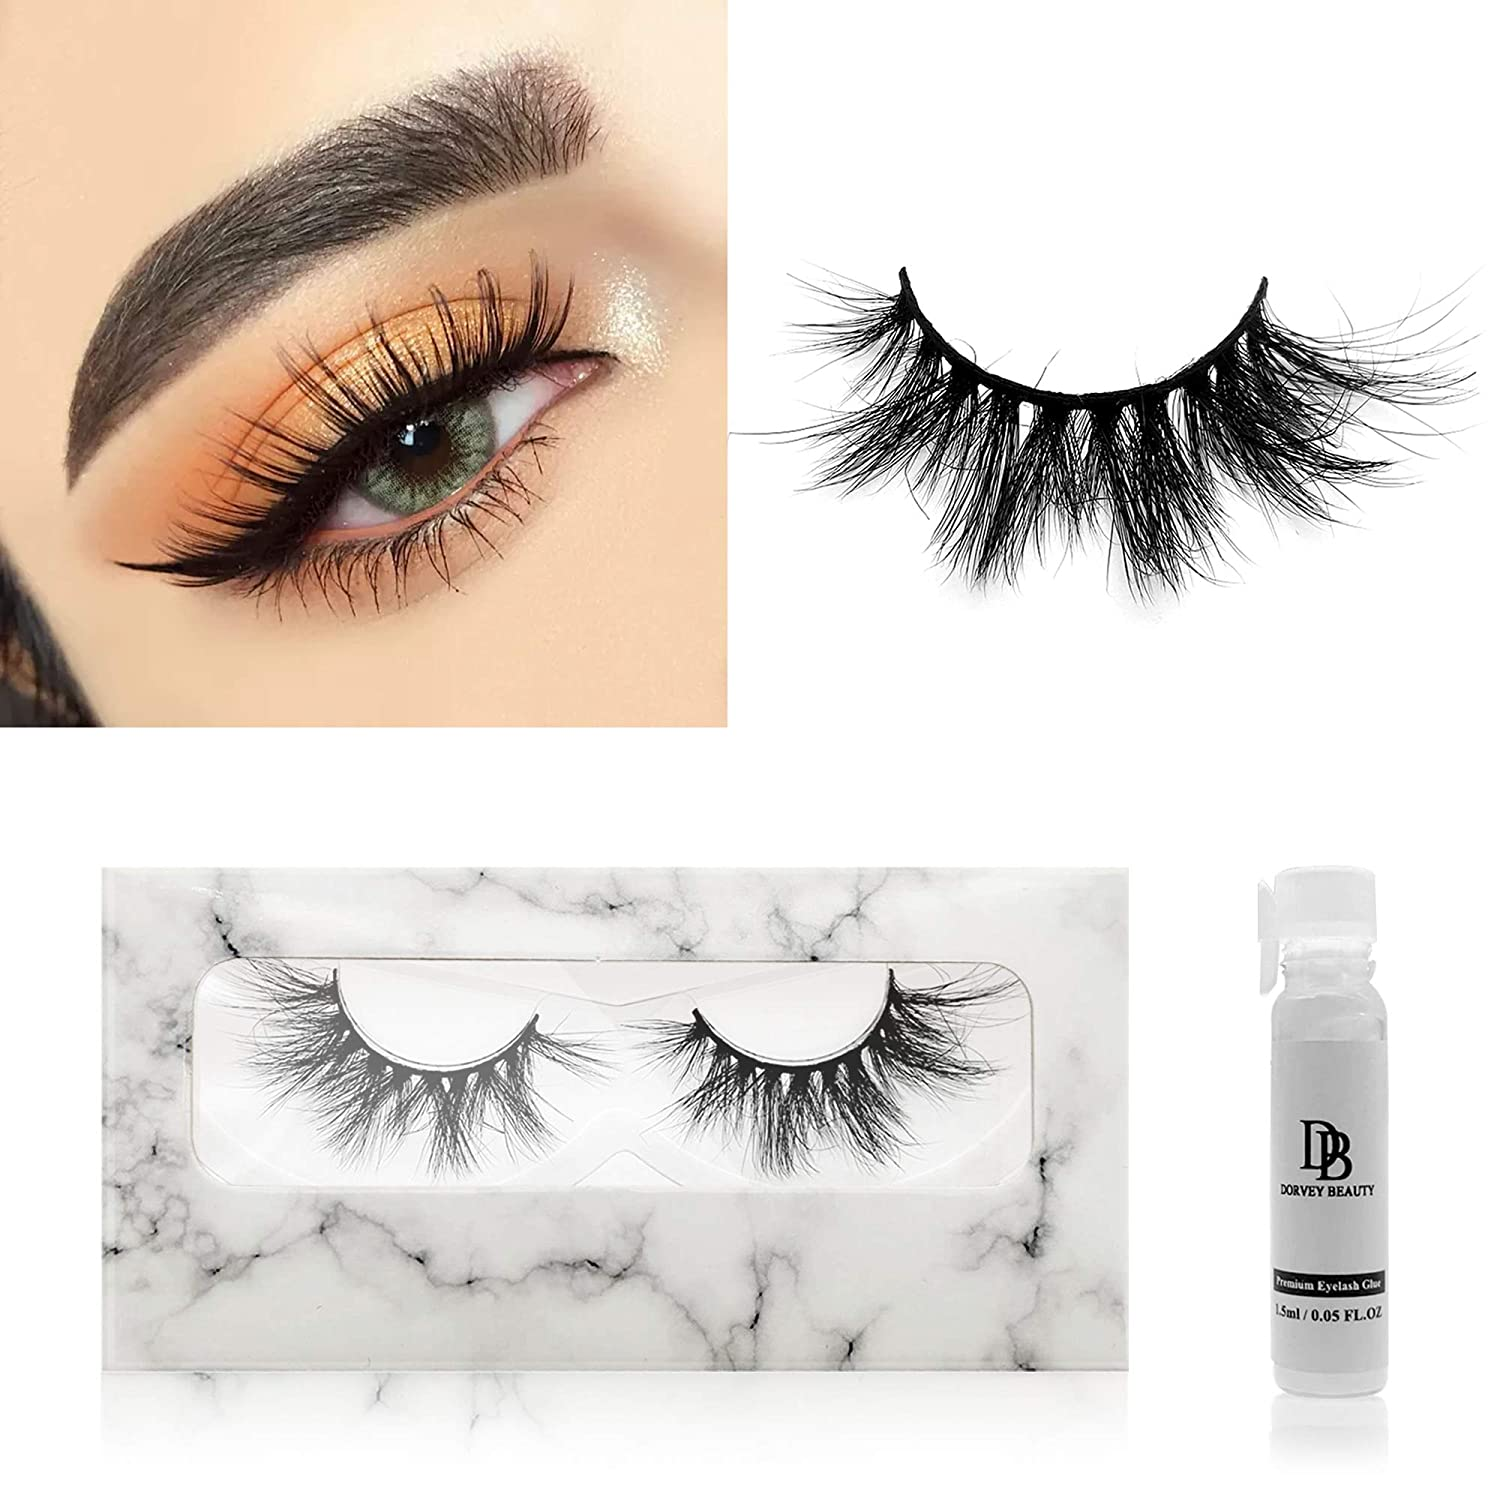 Dorvey Beauty Mink At the price of surprise cheap Lashes 3D 18mm Look Eyelashes Natural S